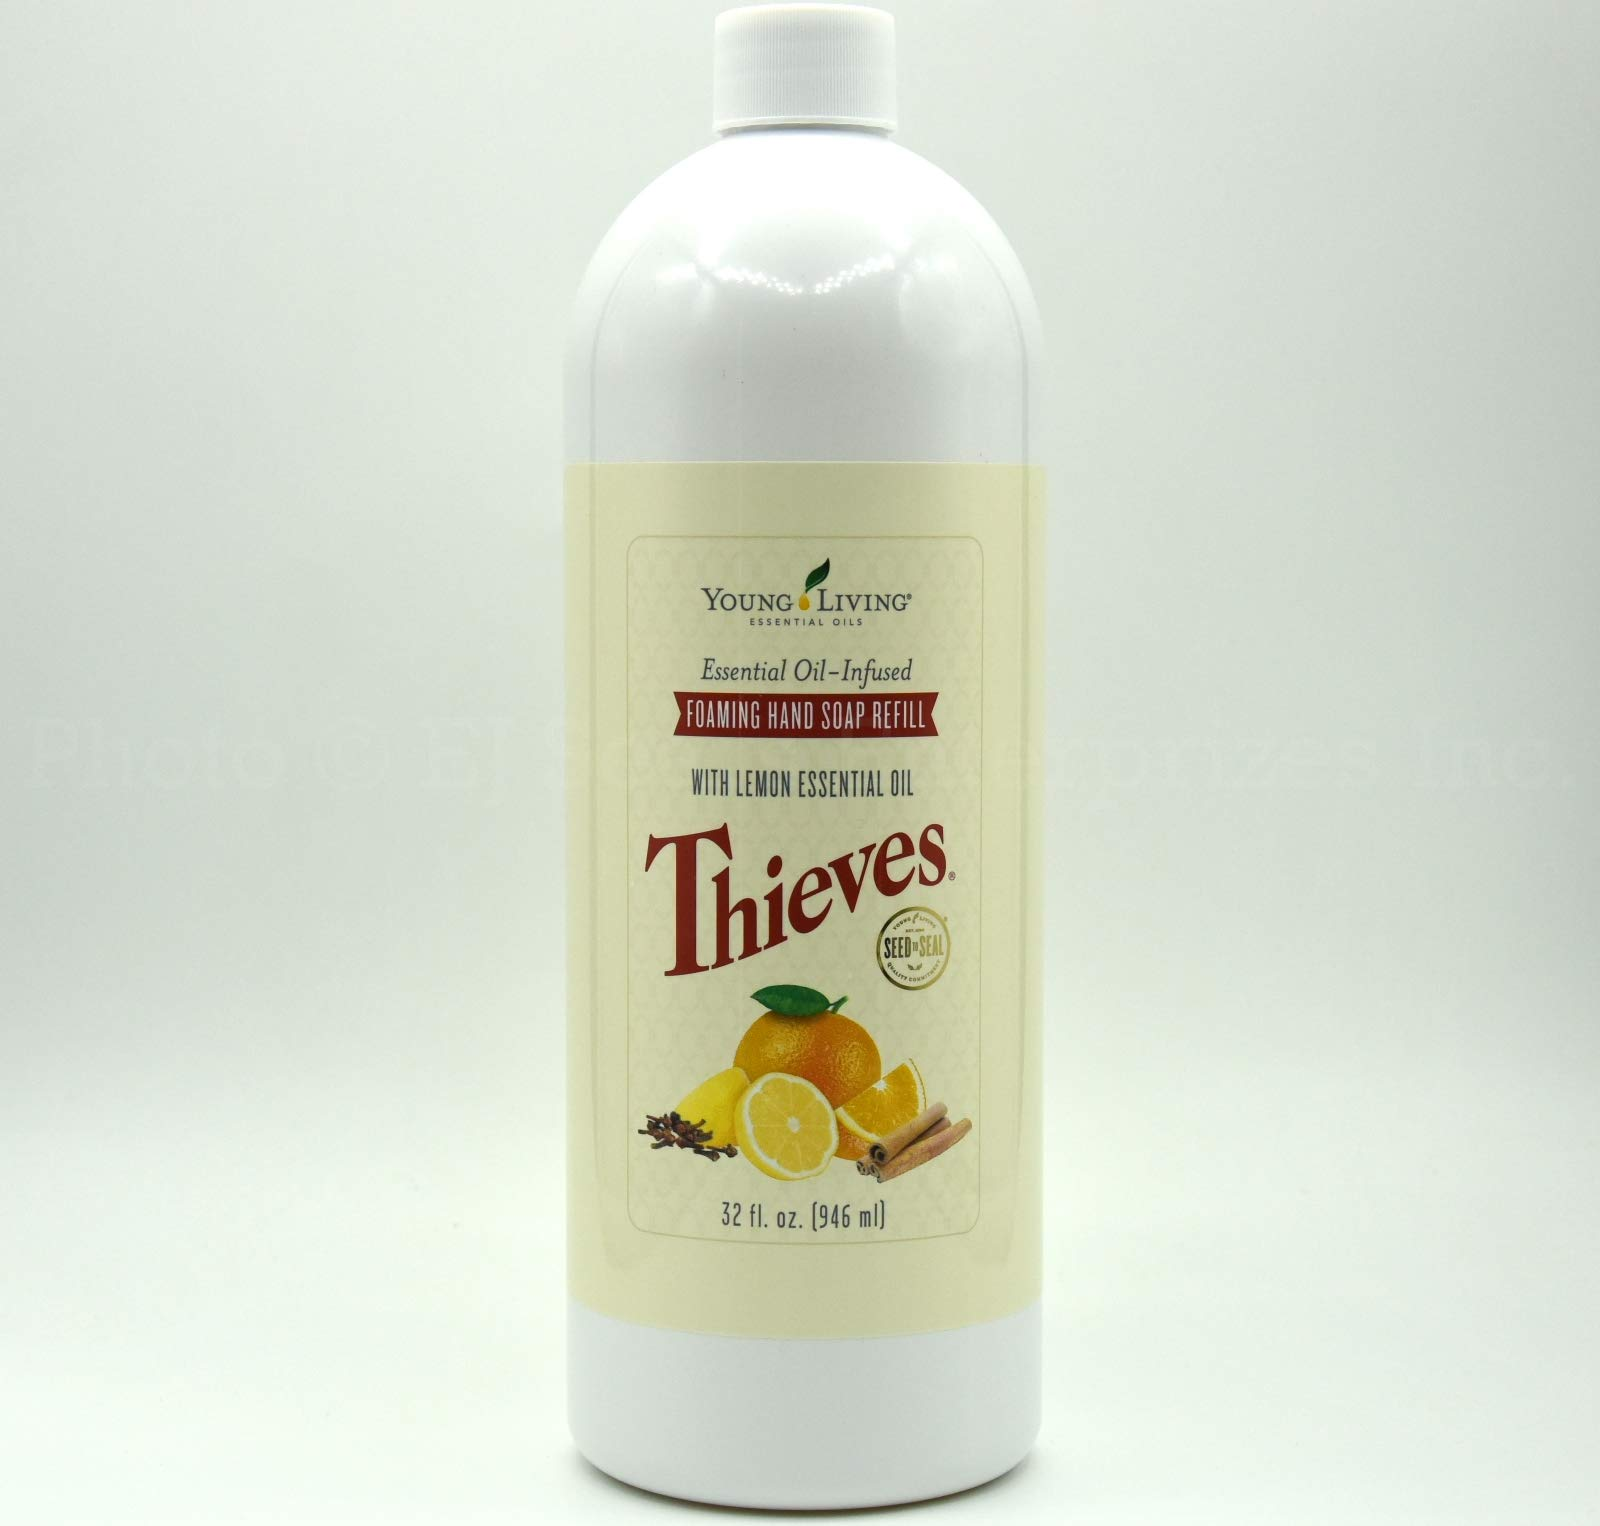 Young Living EssentialOilsLife - Thieves Foaming Hand Soap Refill - 32 oz by Young Living